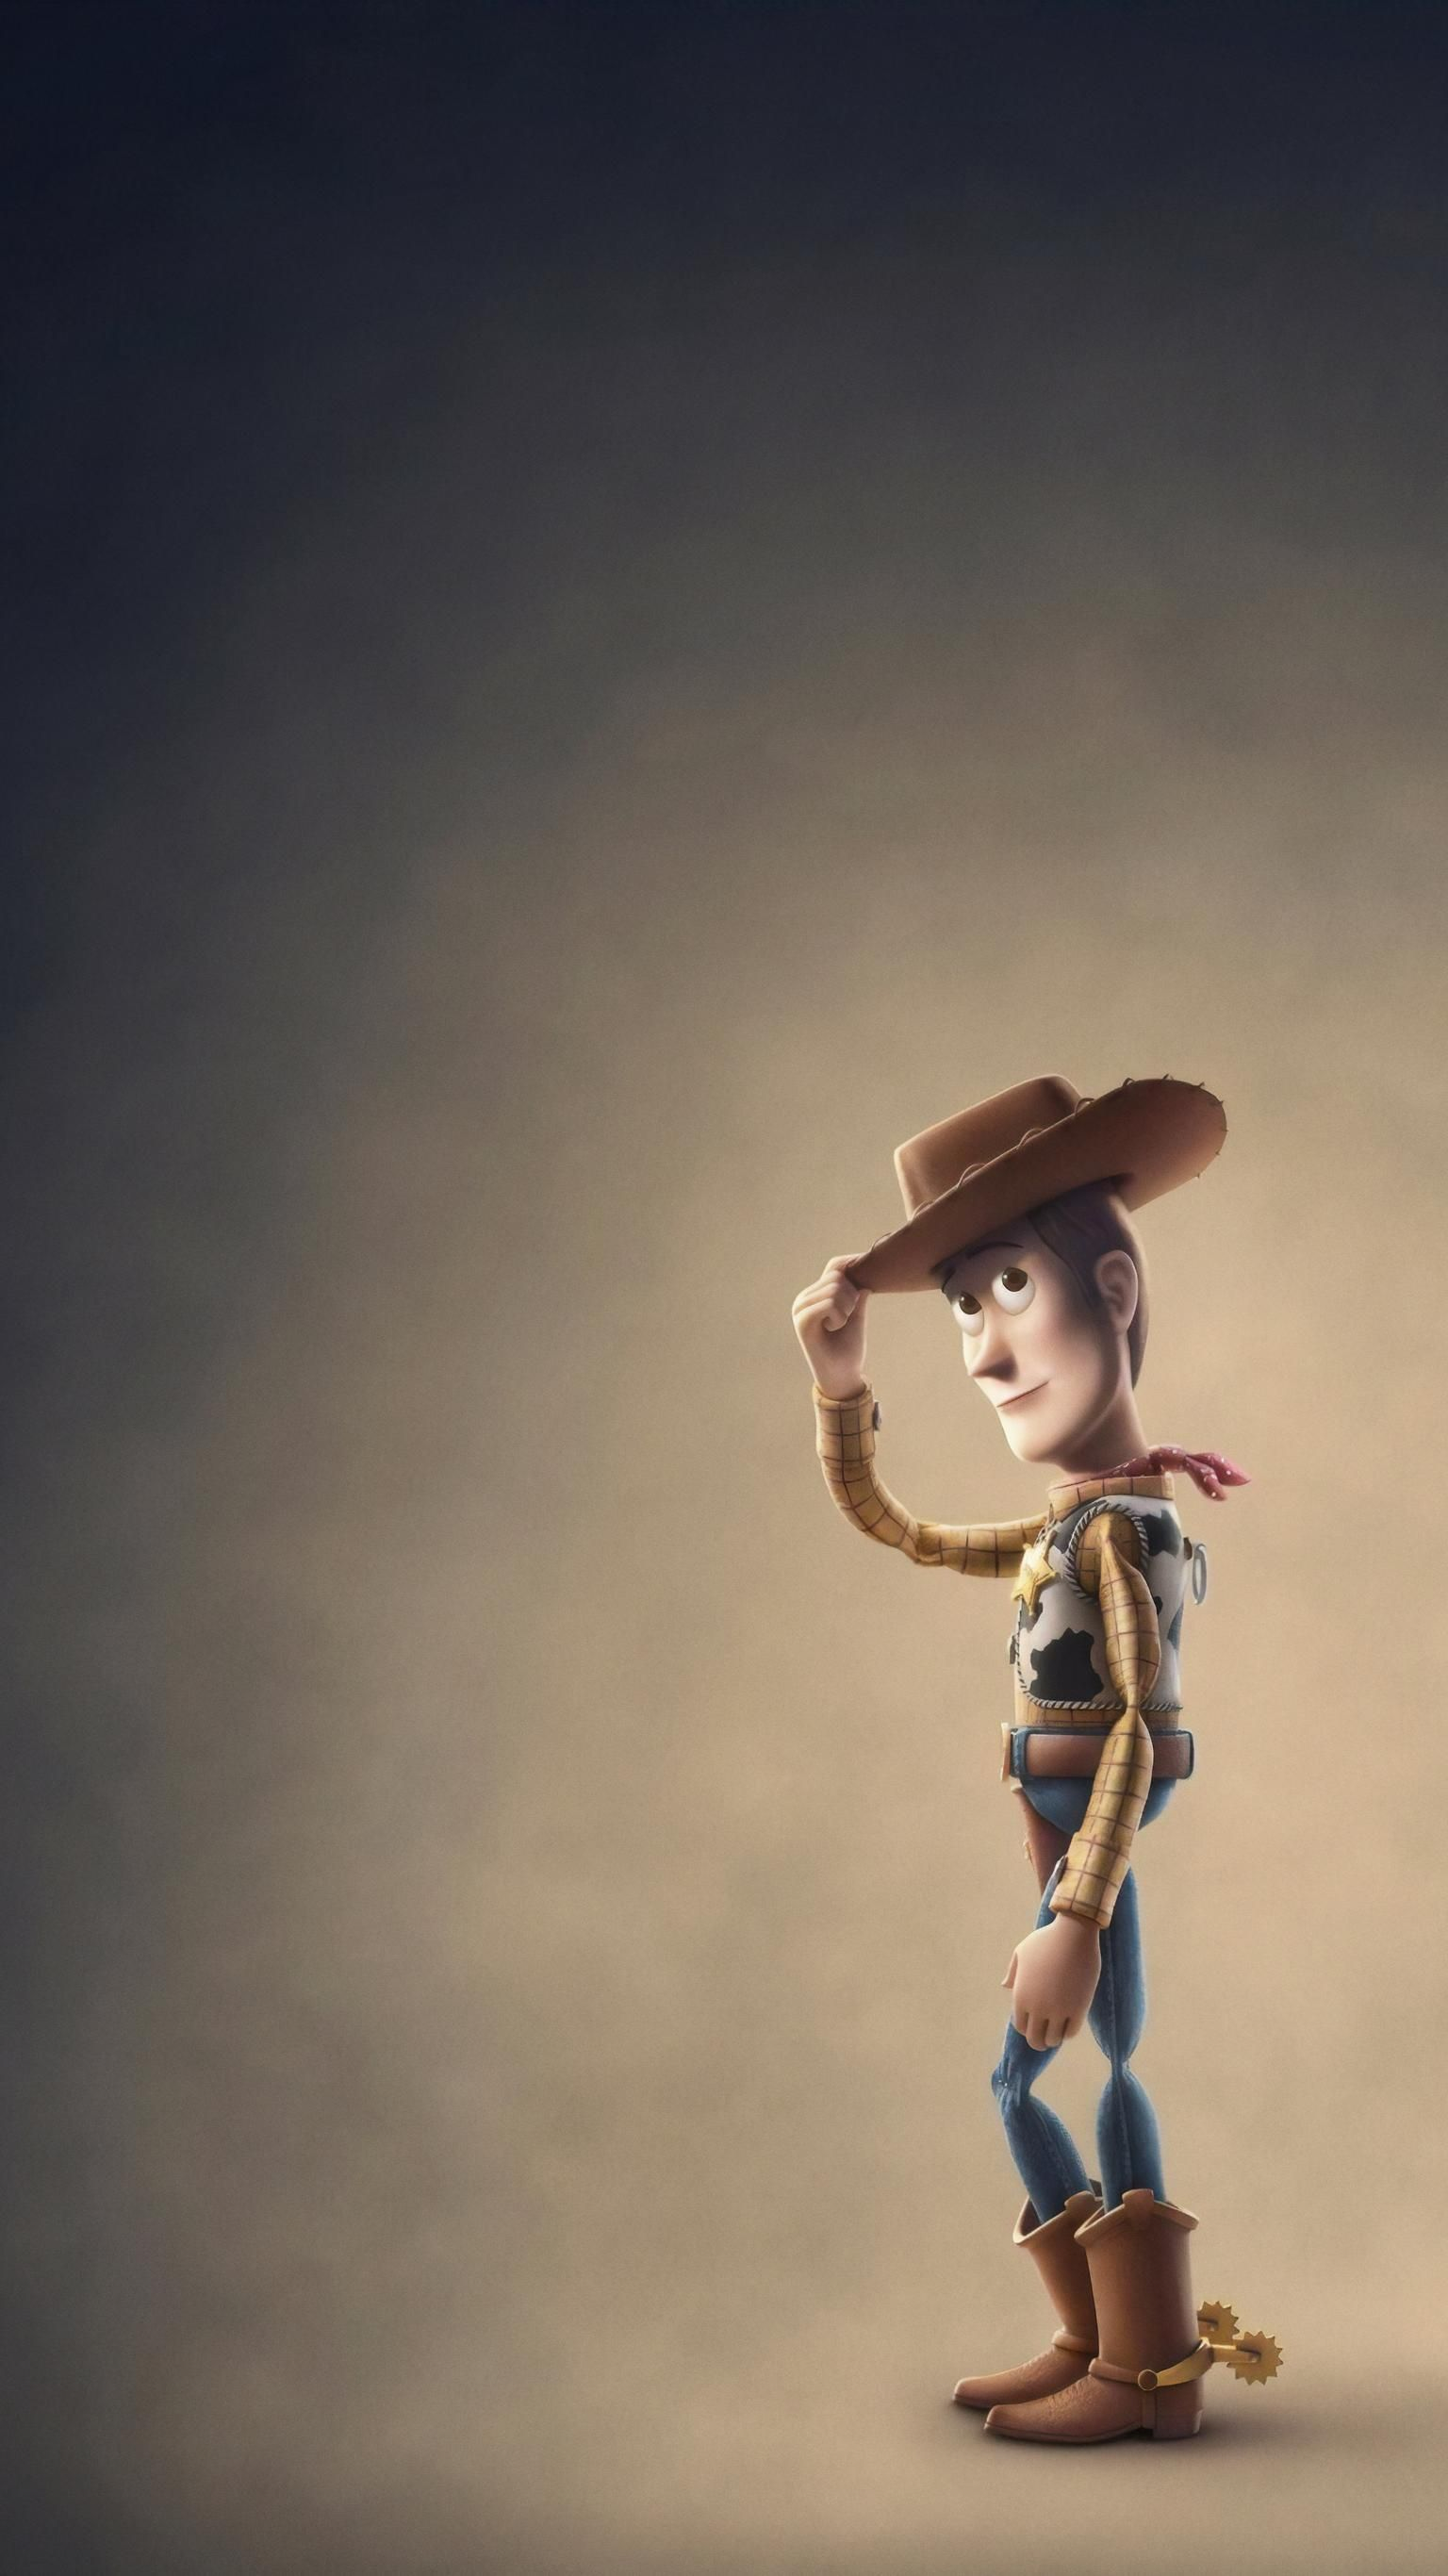 Toy Story 4 2019 Phone Wallpaper Toy Story Disney